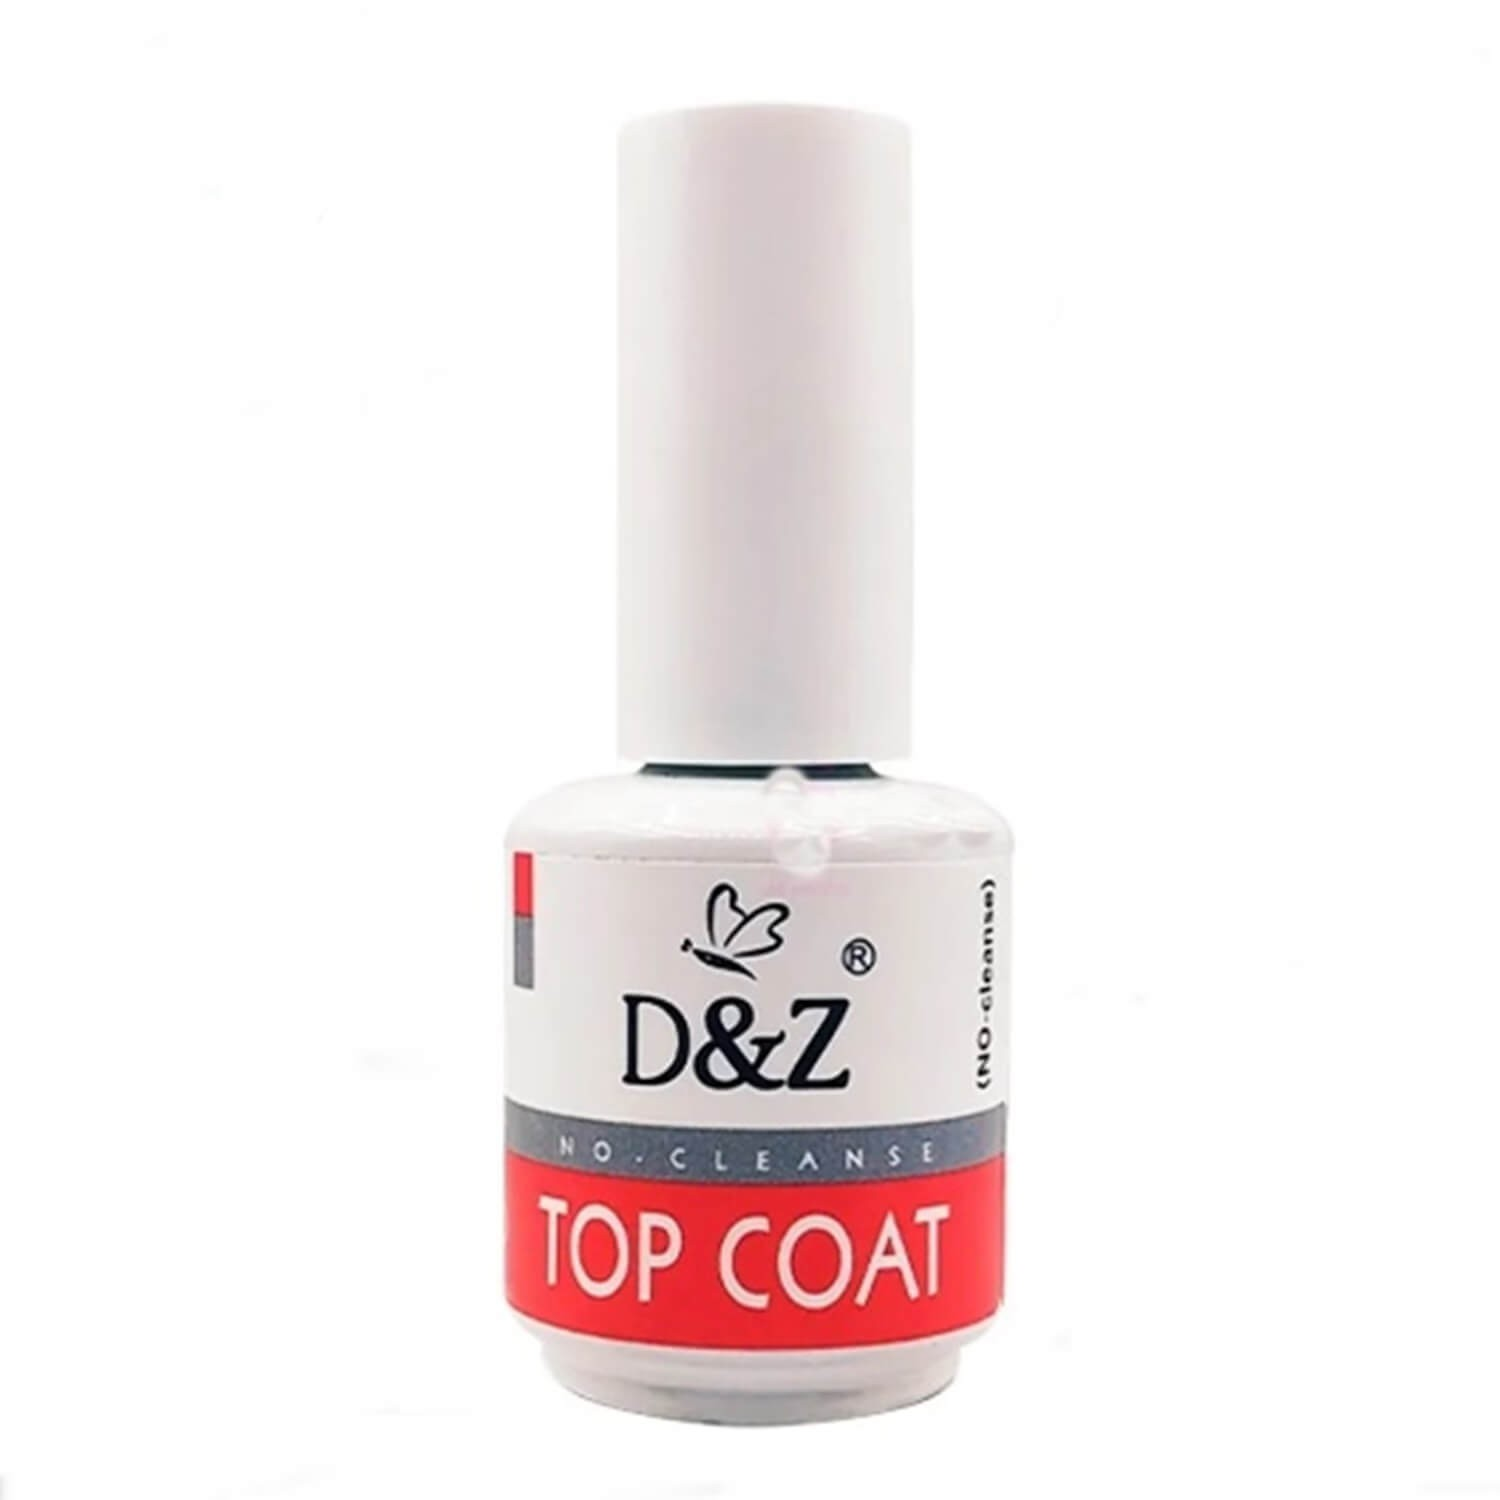 Top Coat - 15ml - D&Z